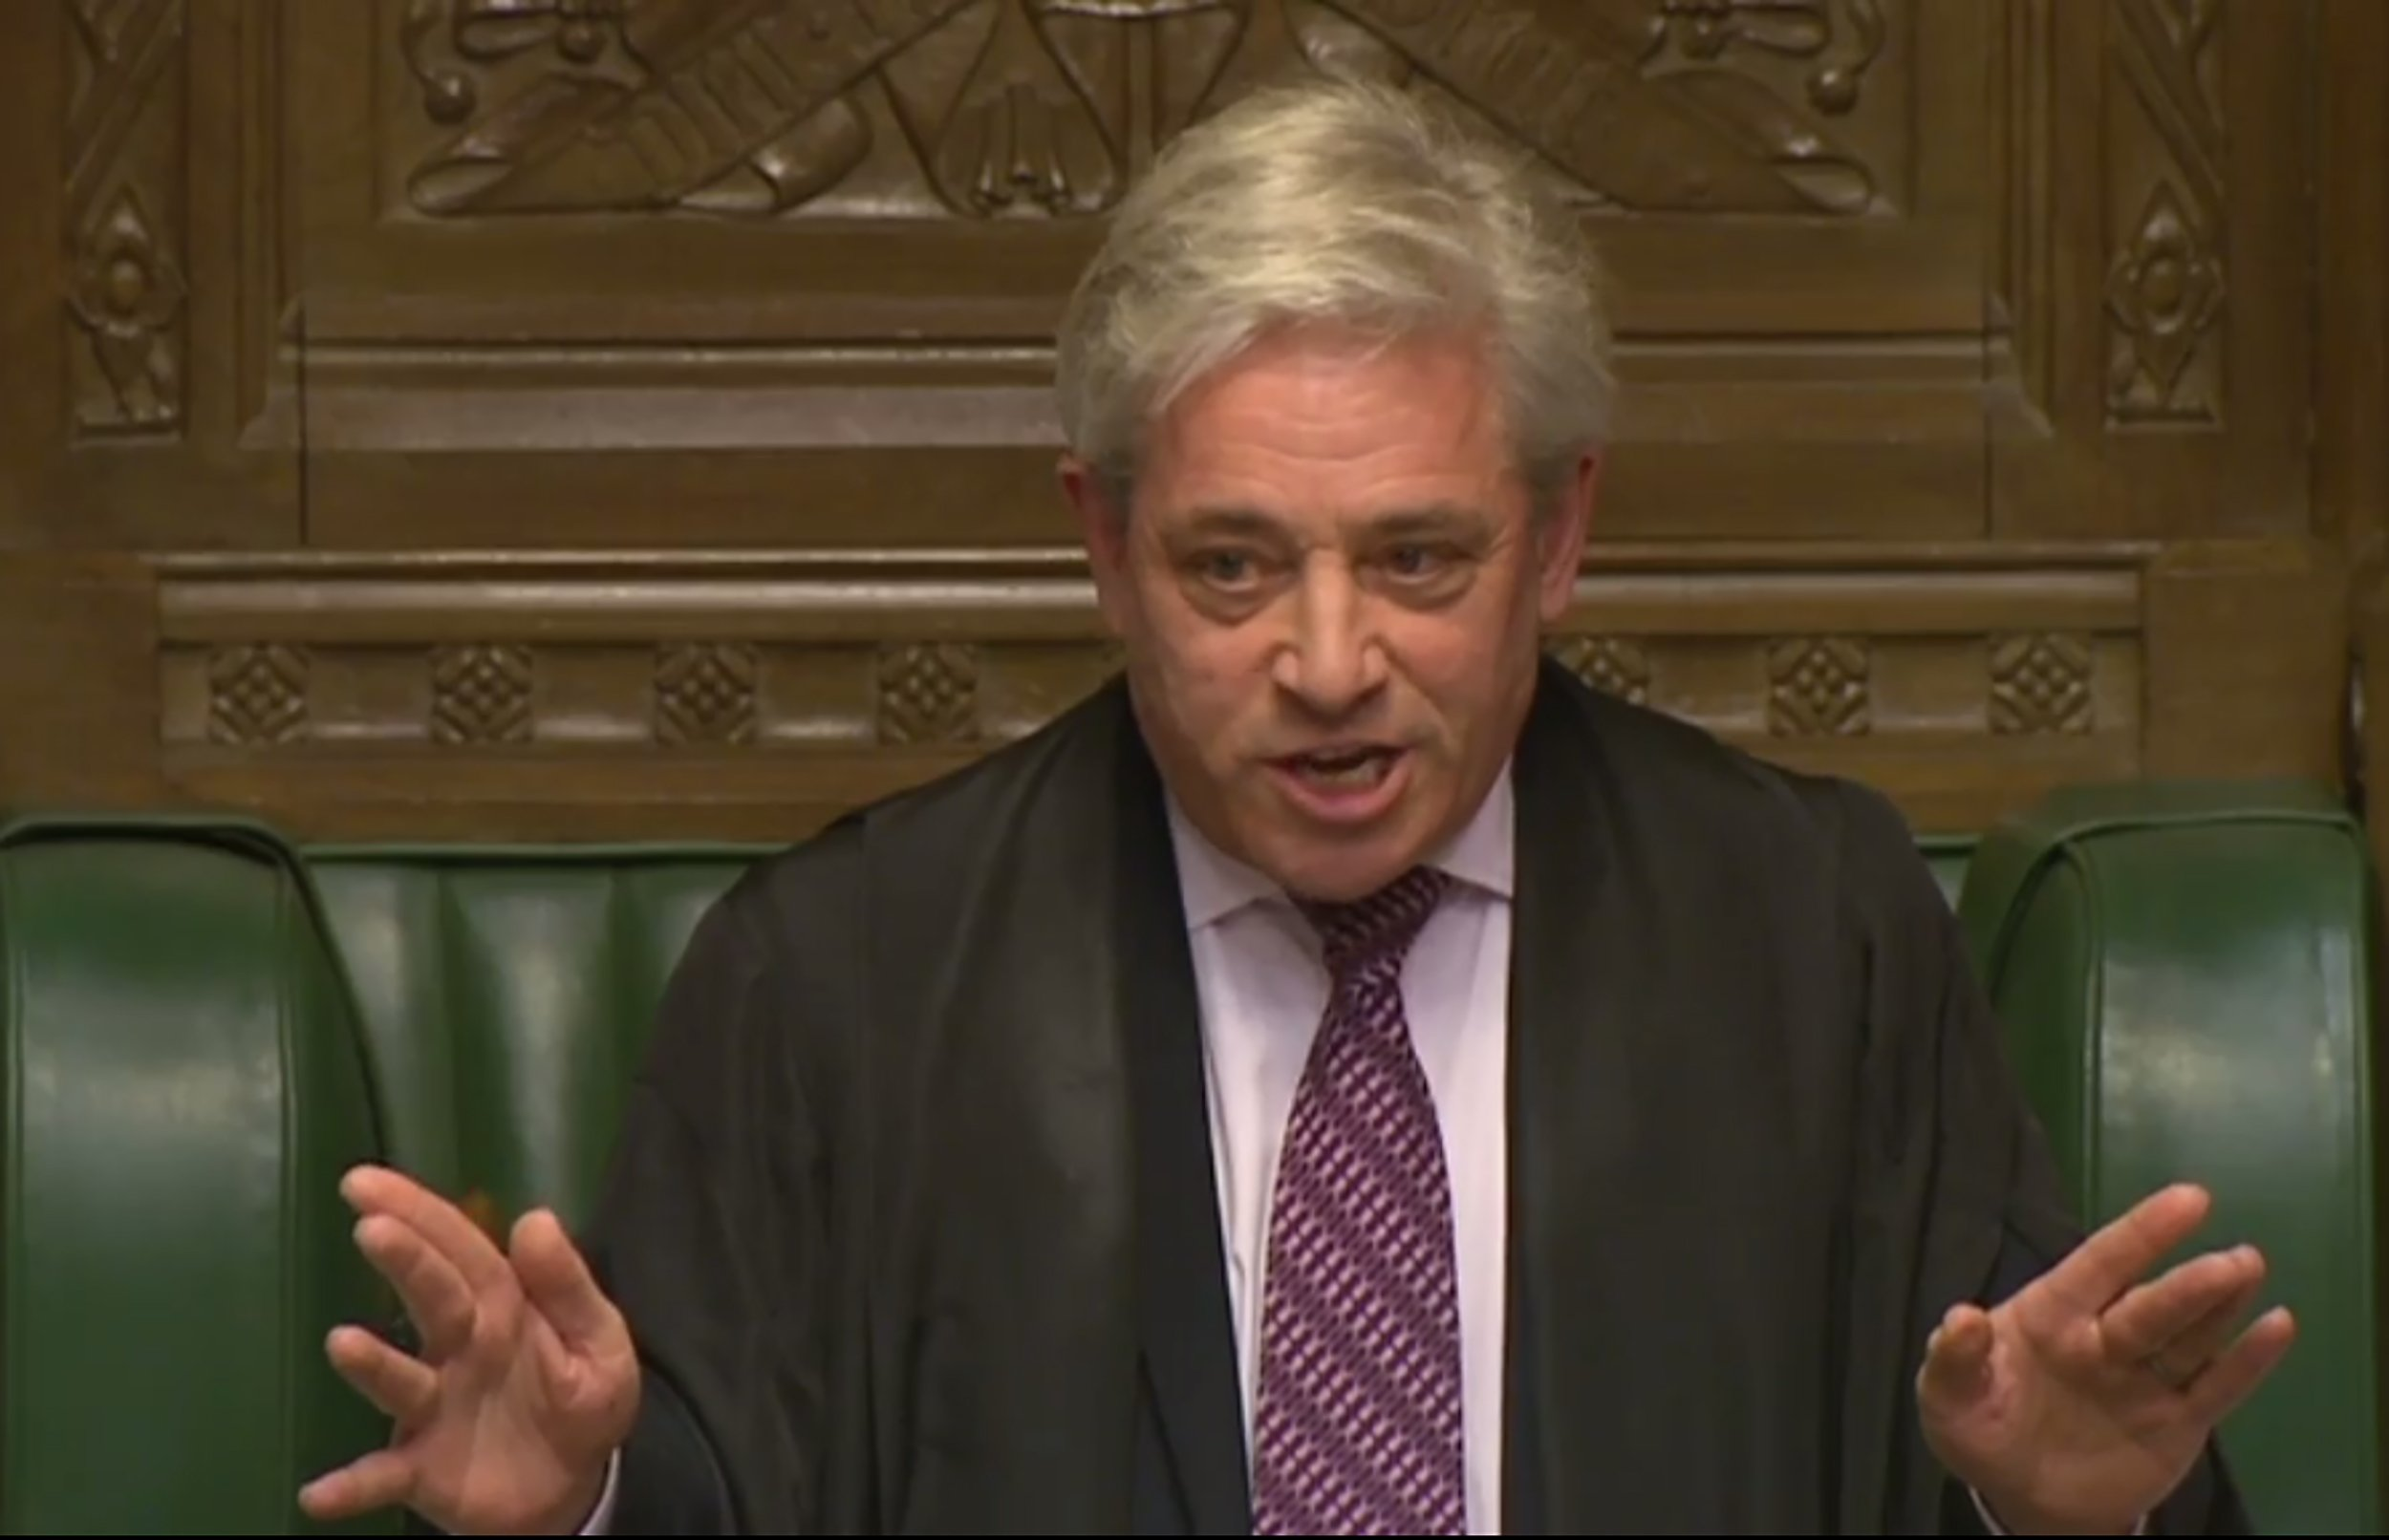 Not everybody is happy with John Bercow saying Donald Trump shouldn't address Parliament